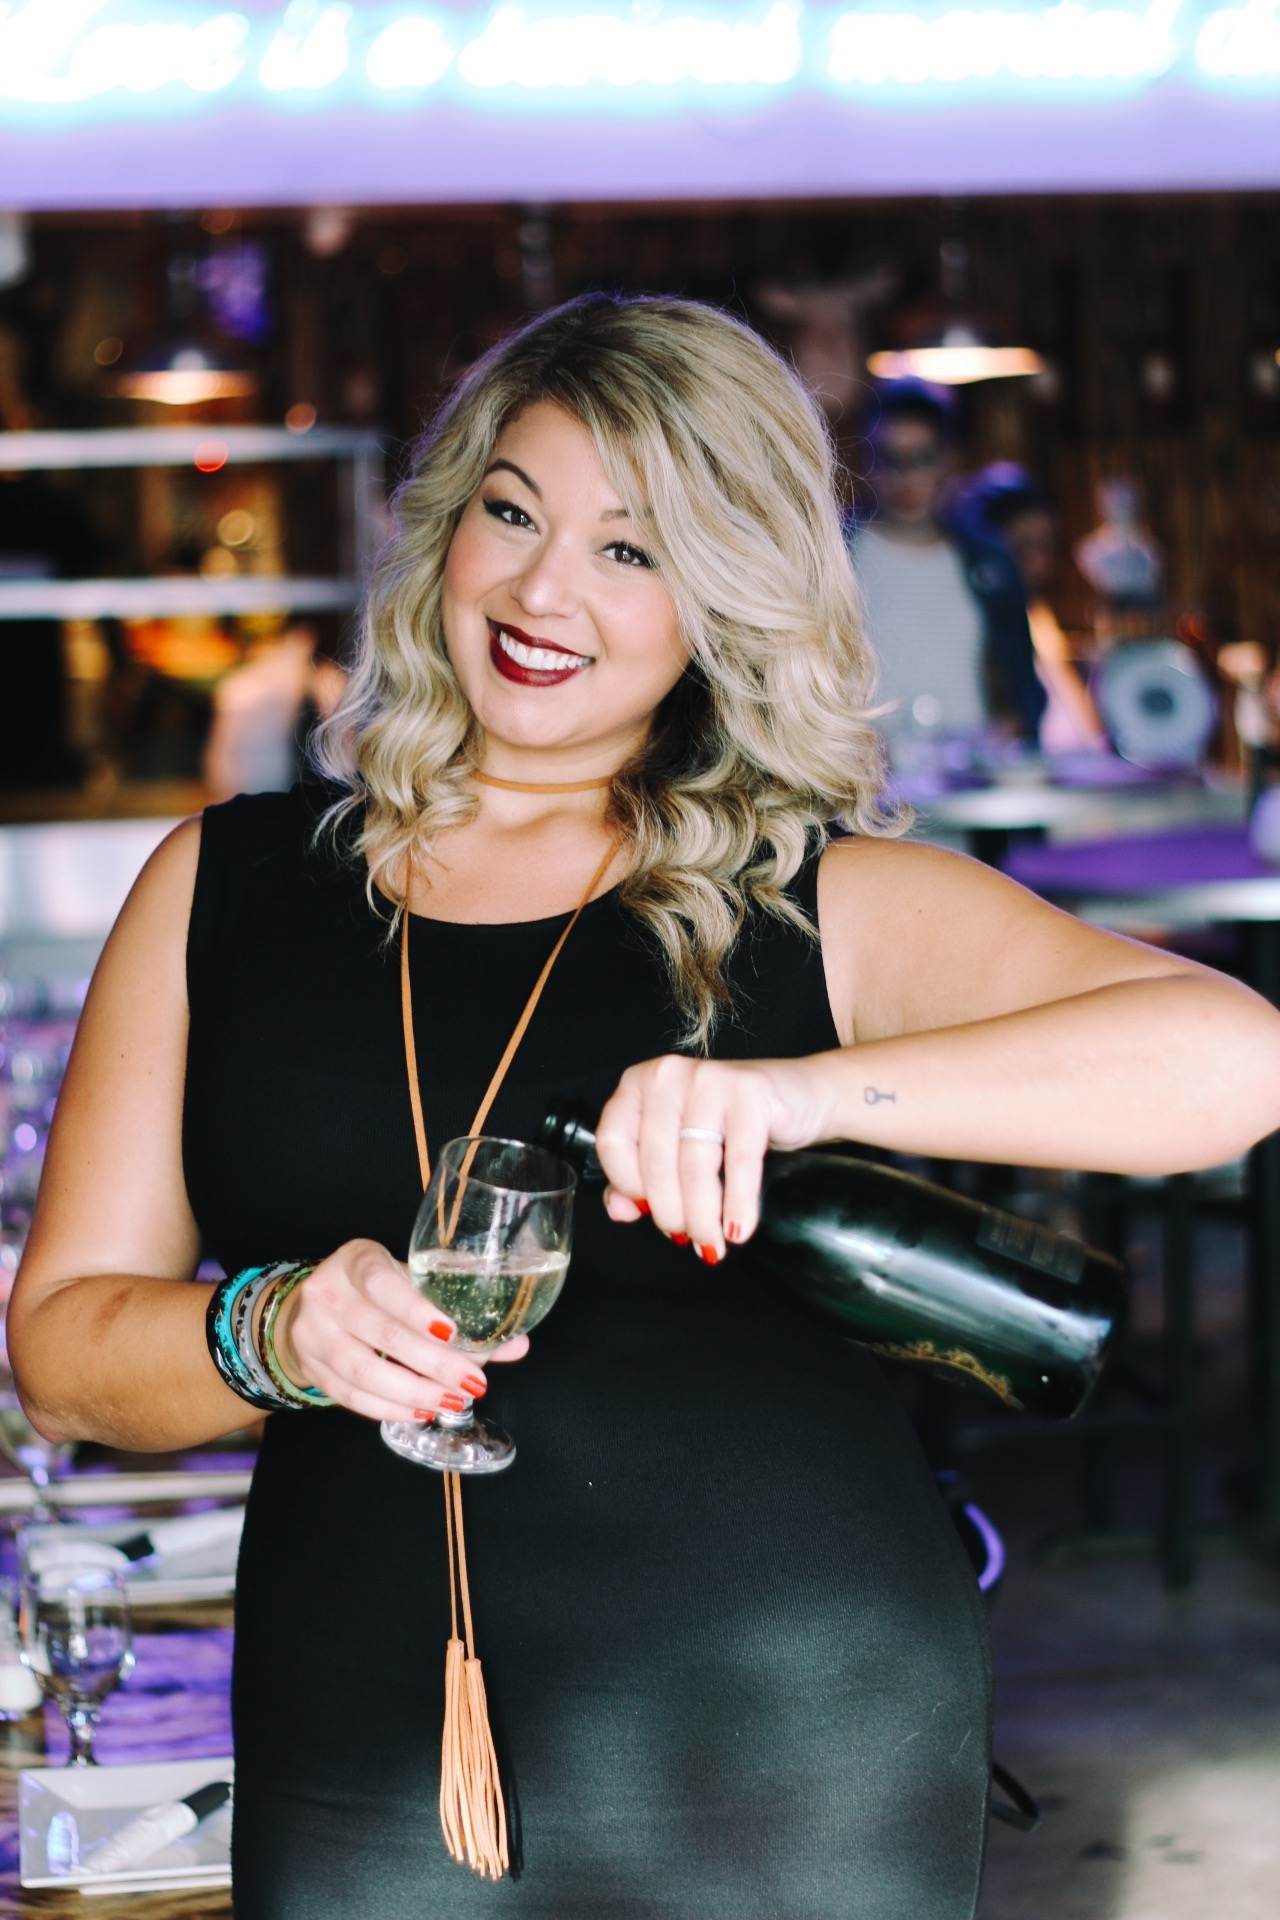 You host, Natalie Leon of Wine With Nat